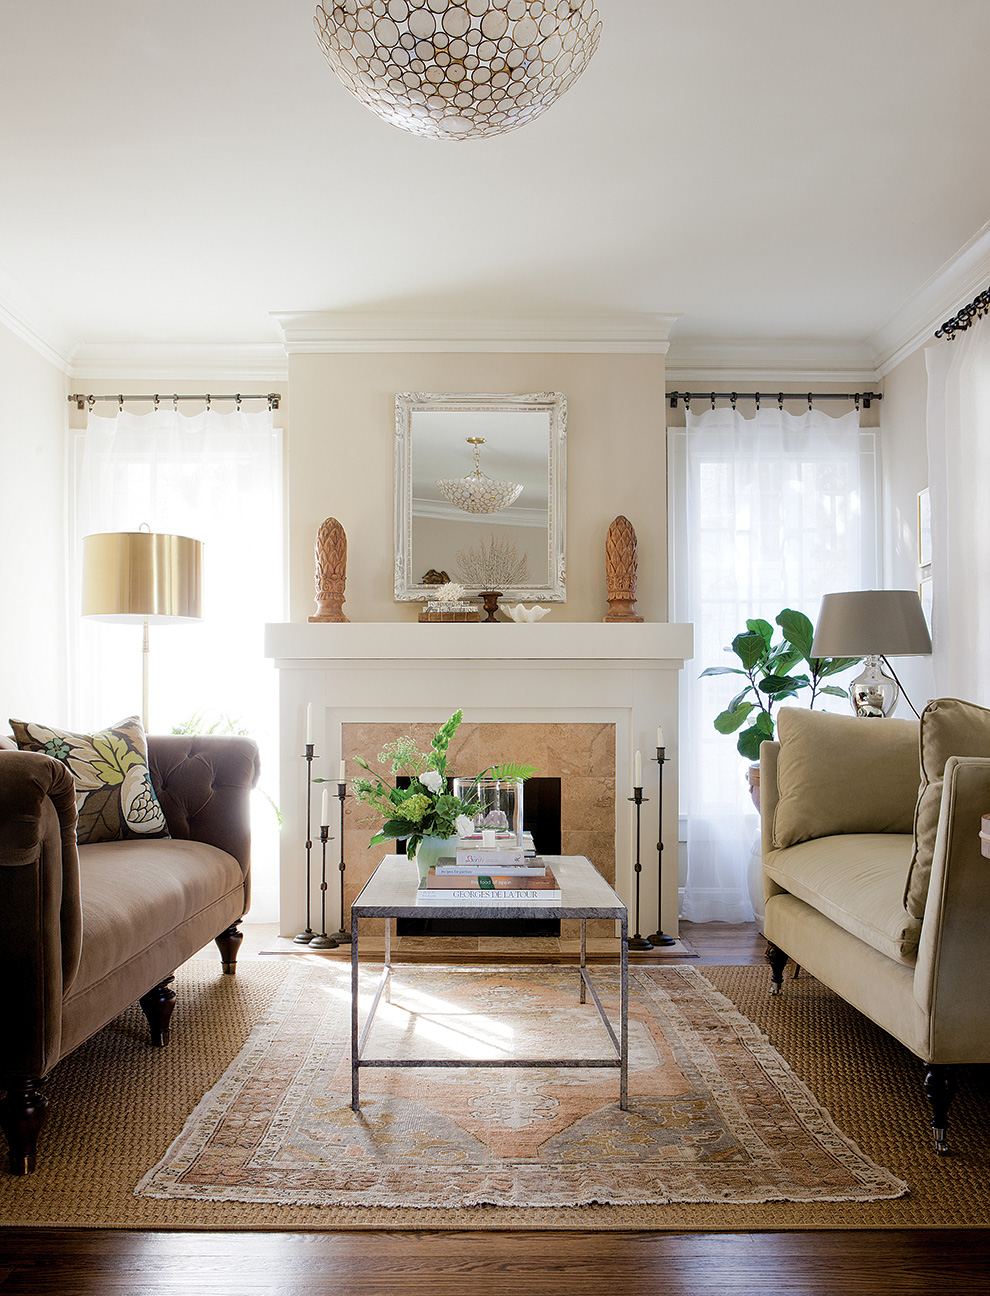 Westwood Hills Bungalow | Amanda Steiner Design | Living Room with Hearth and Light